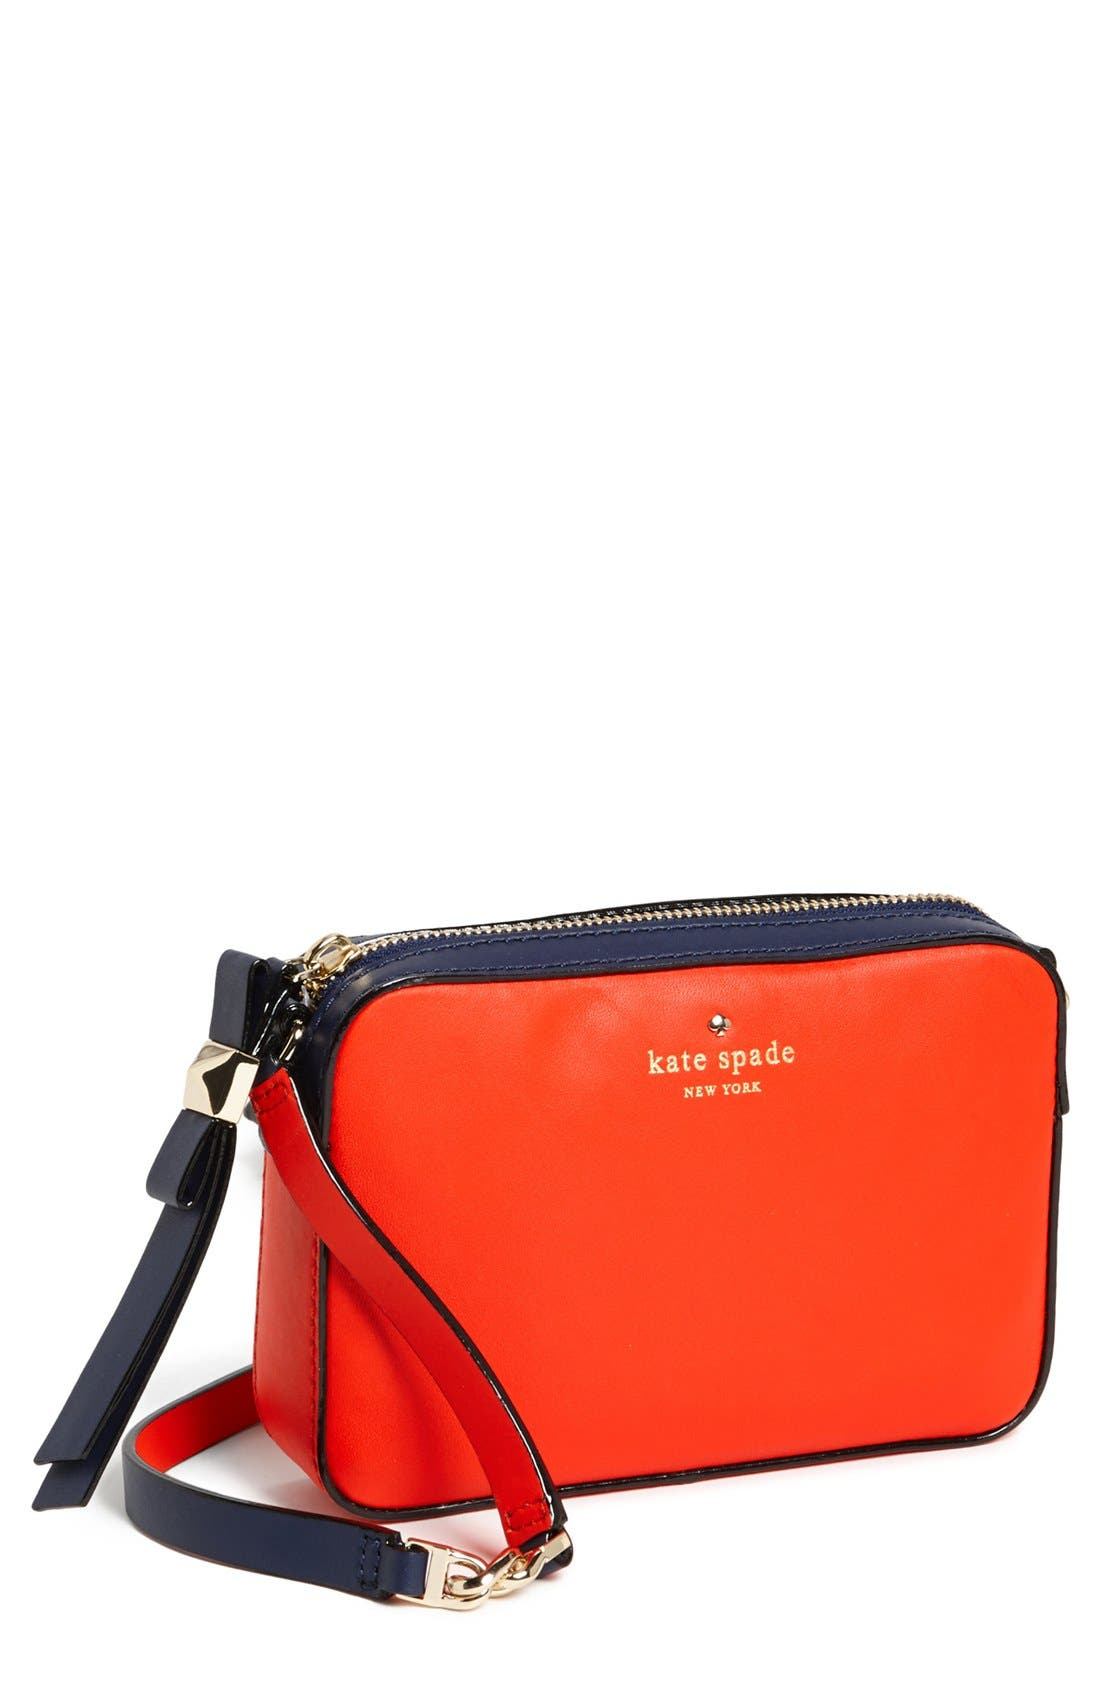 Alternate Image 1 Selected - kate spade new york 'clover' crossbody